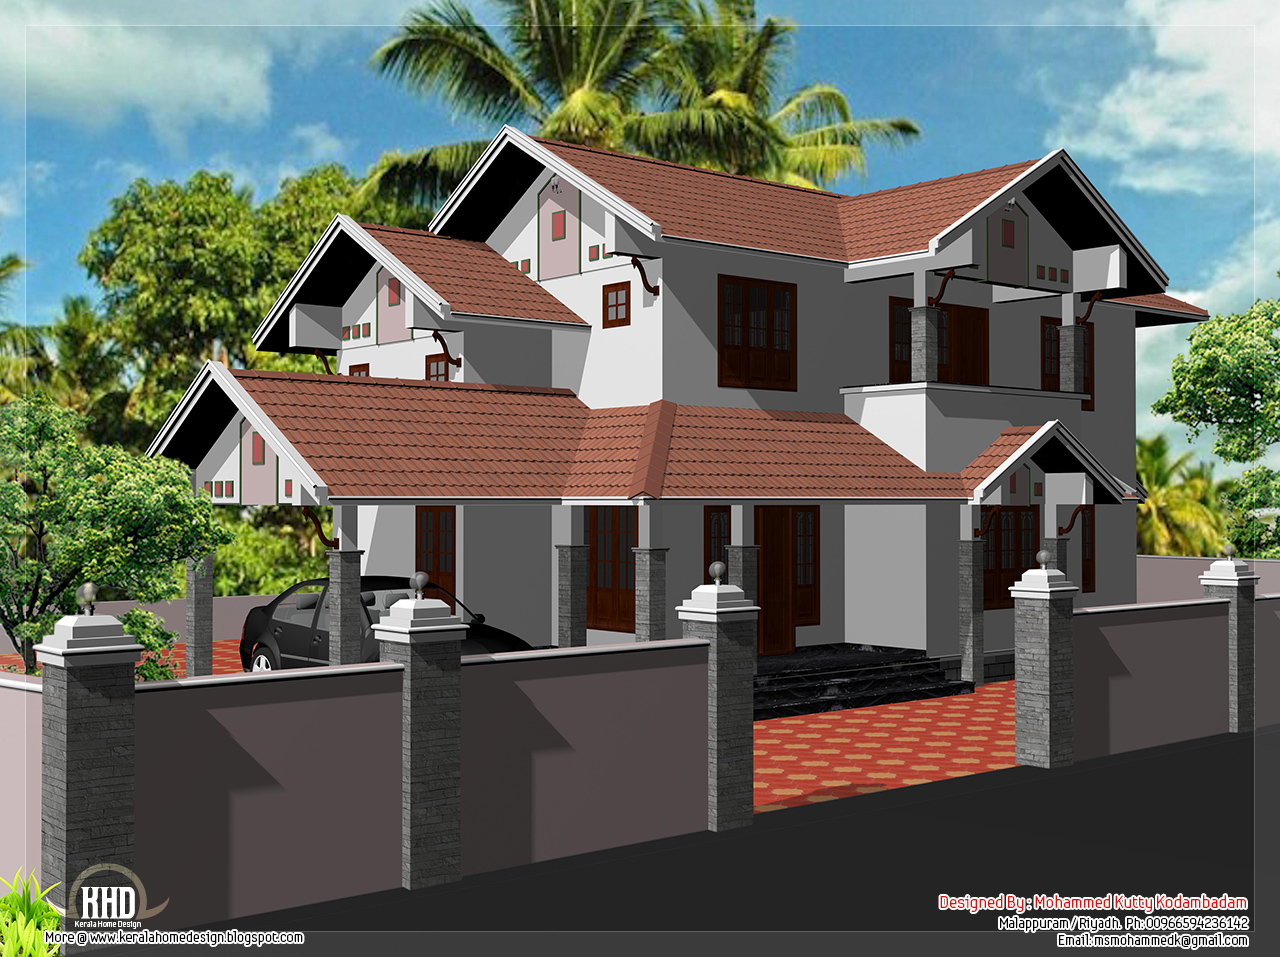 2000 house elevation design kerala home 2000 sq ft house images